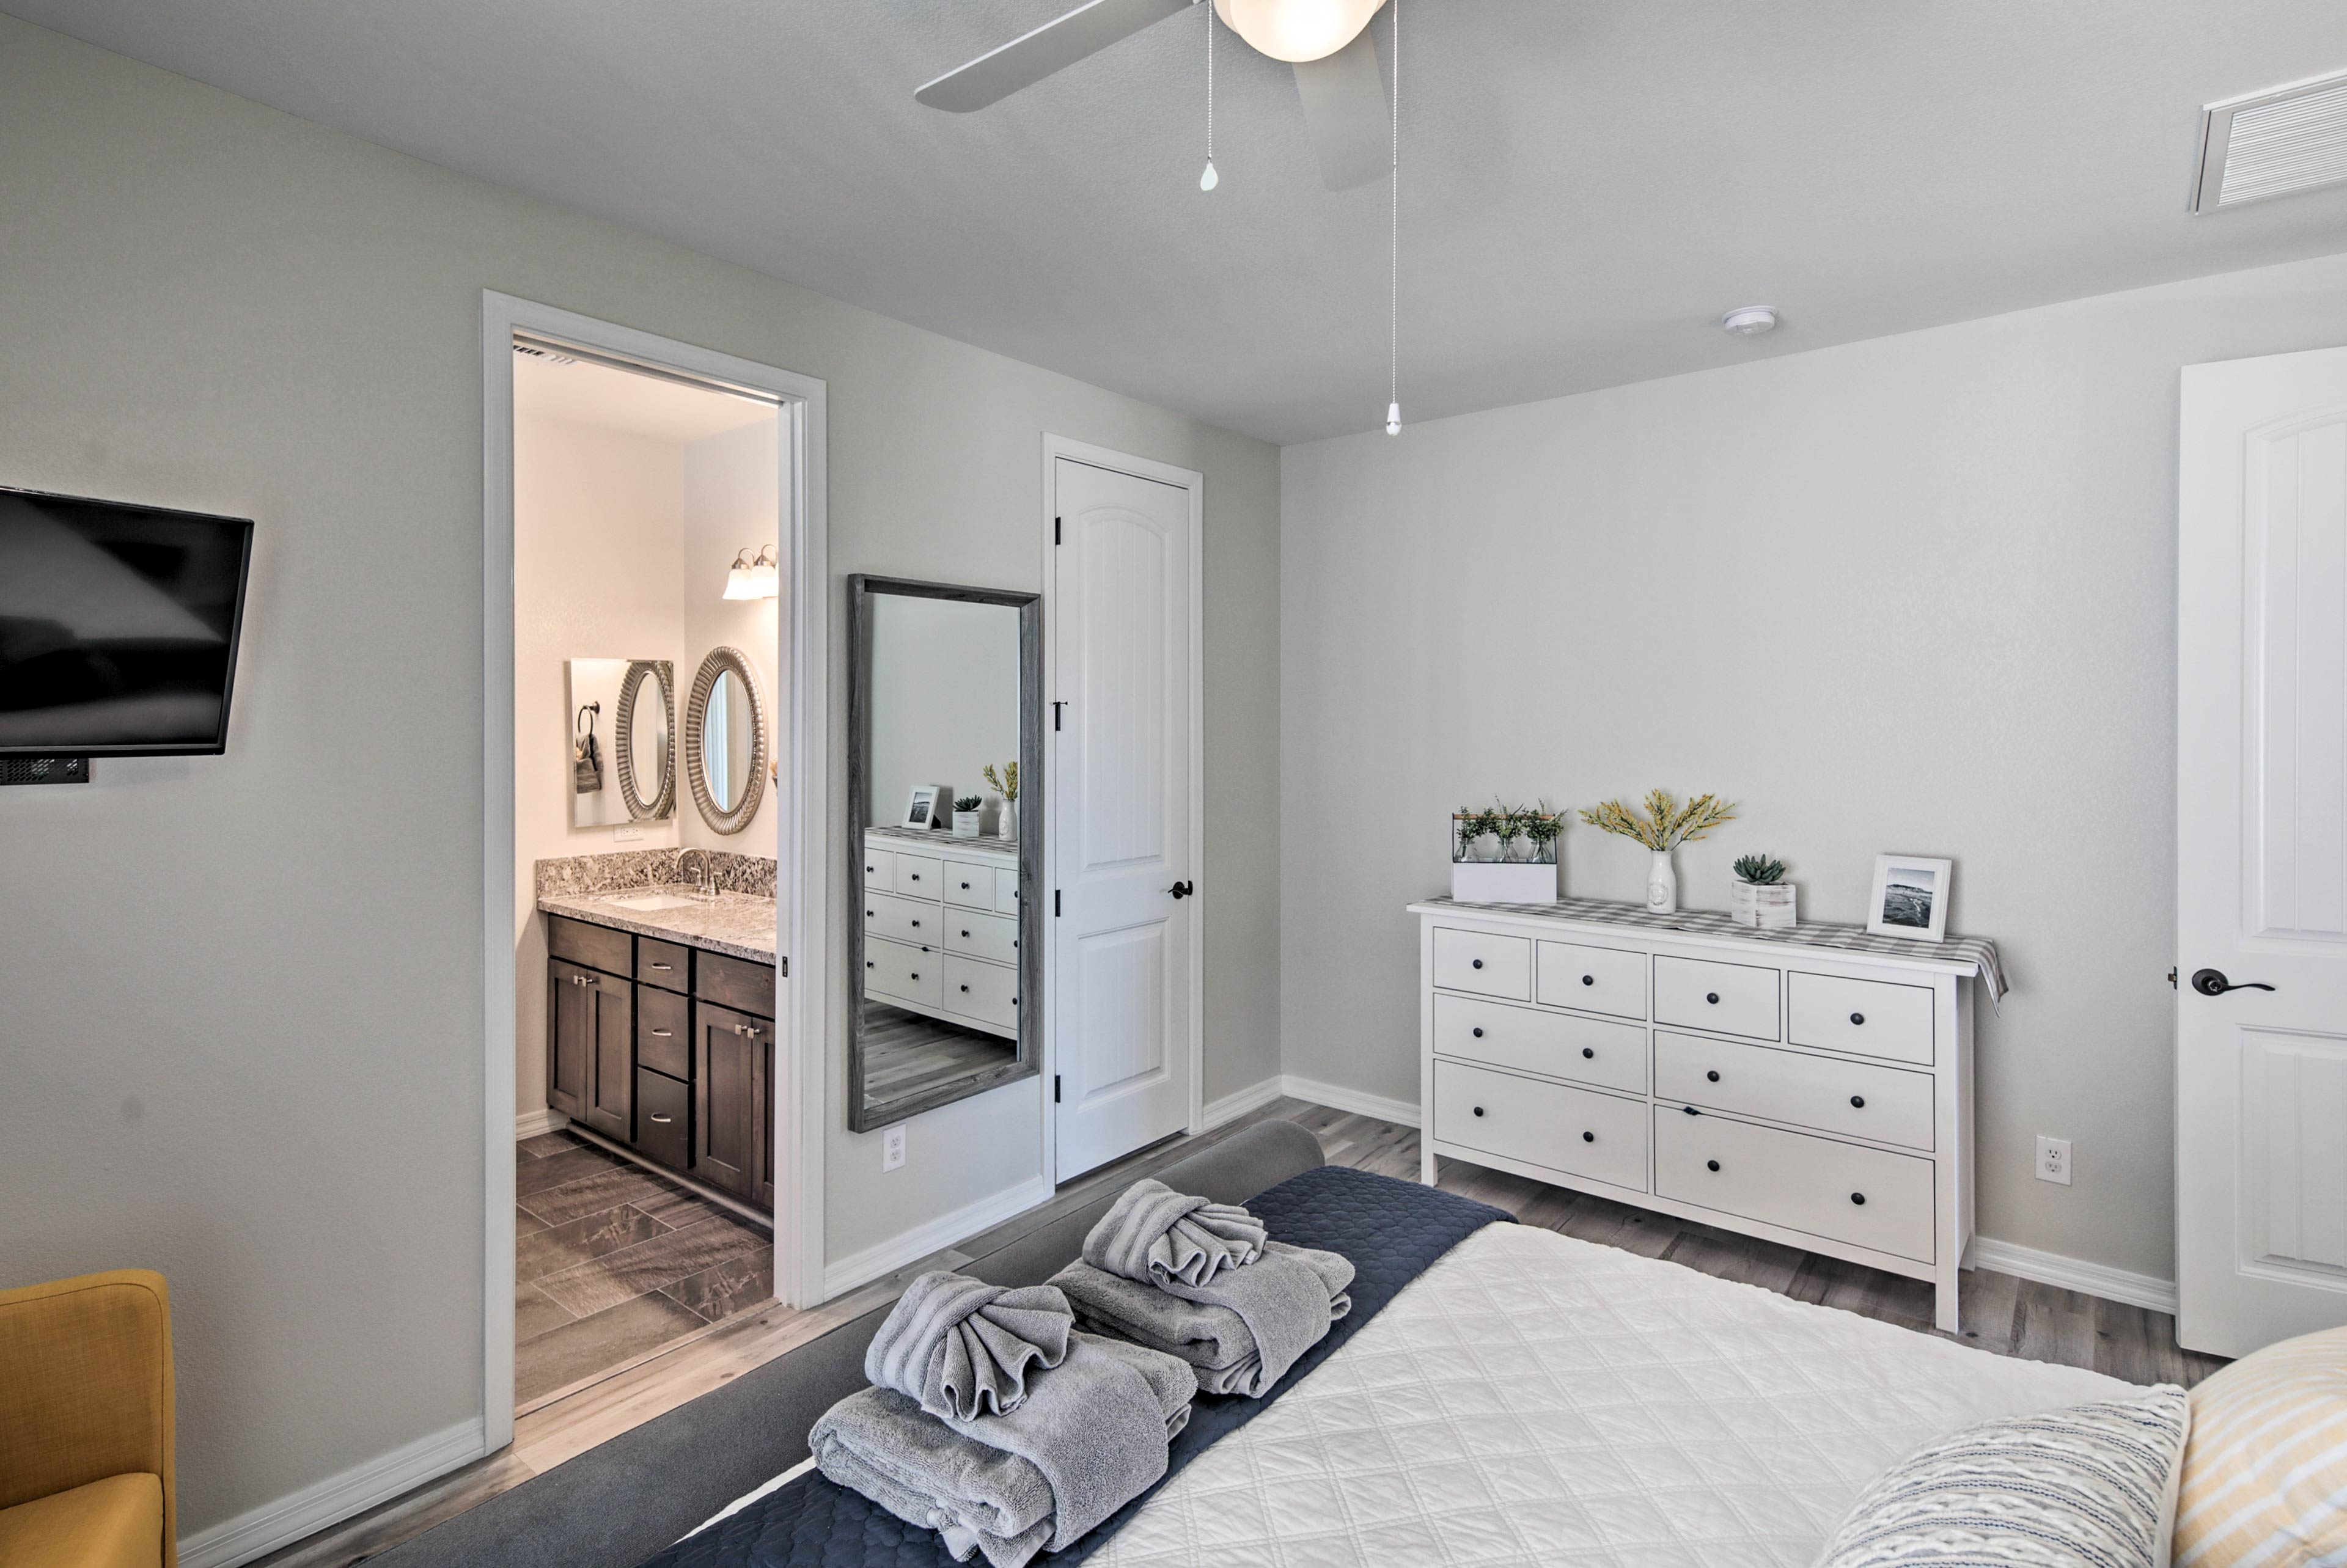 This room has tasteful decor with a white dresser for storage.